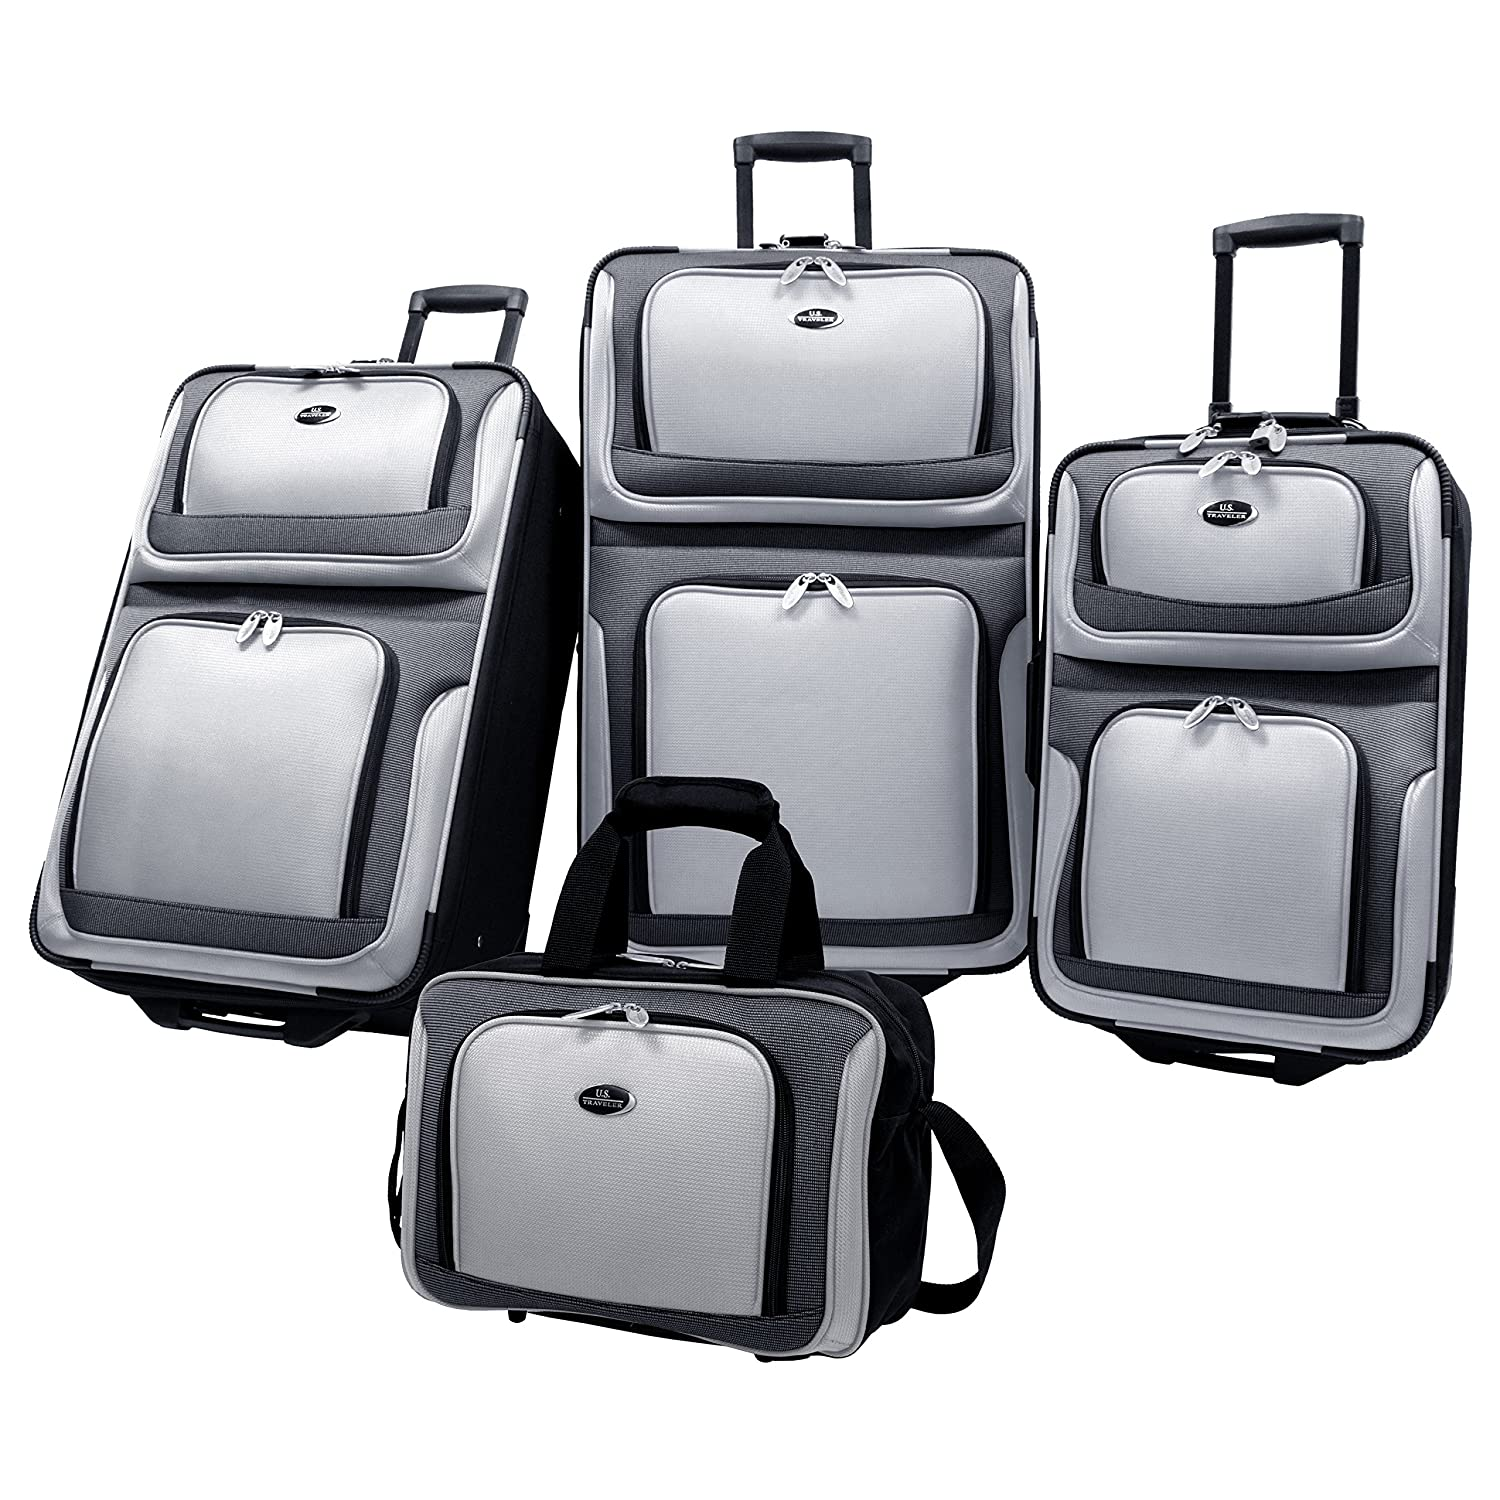 Best Luggage Sets 1